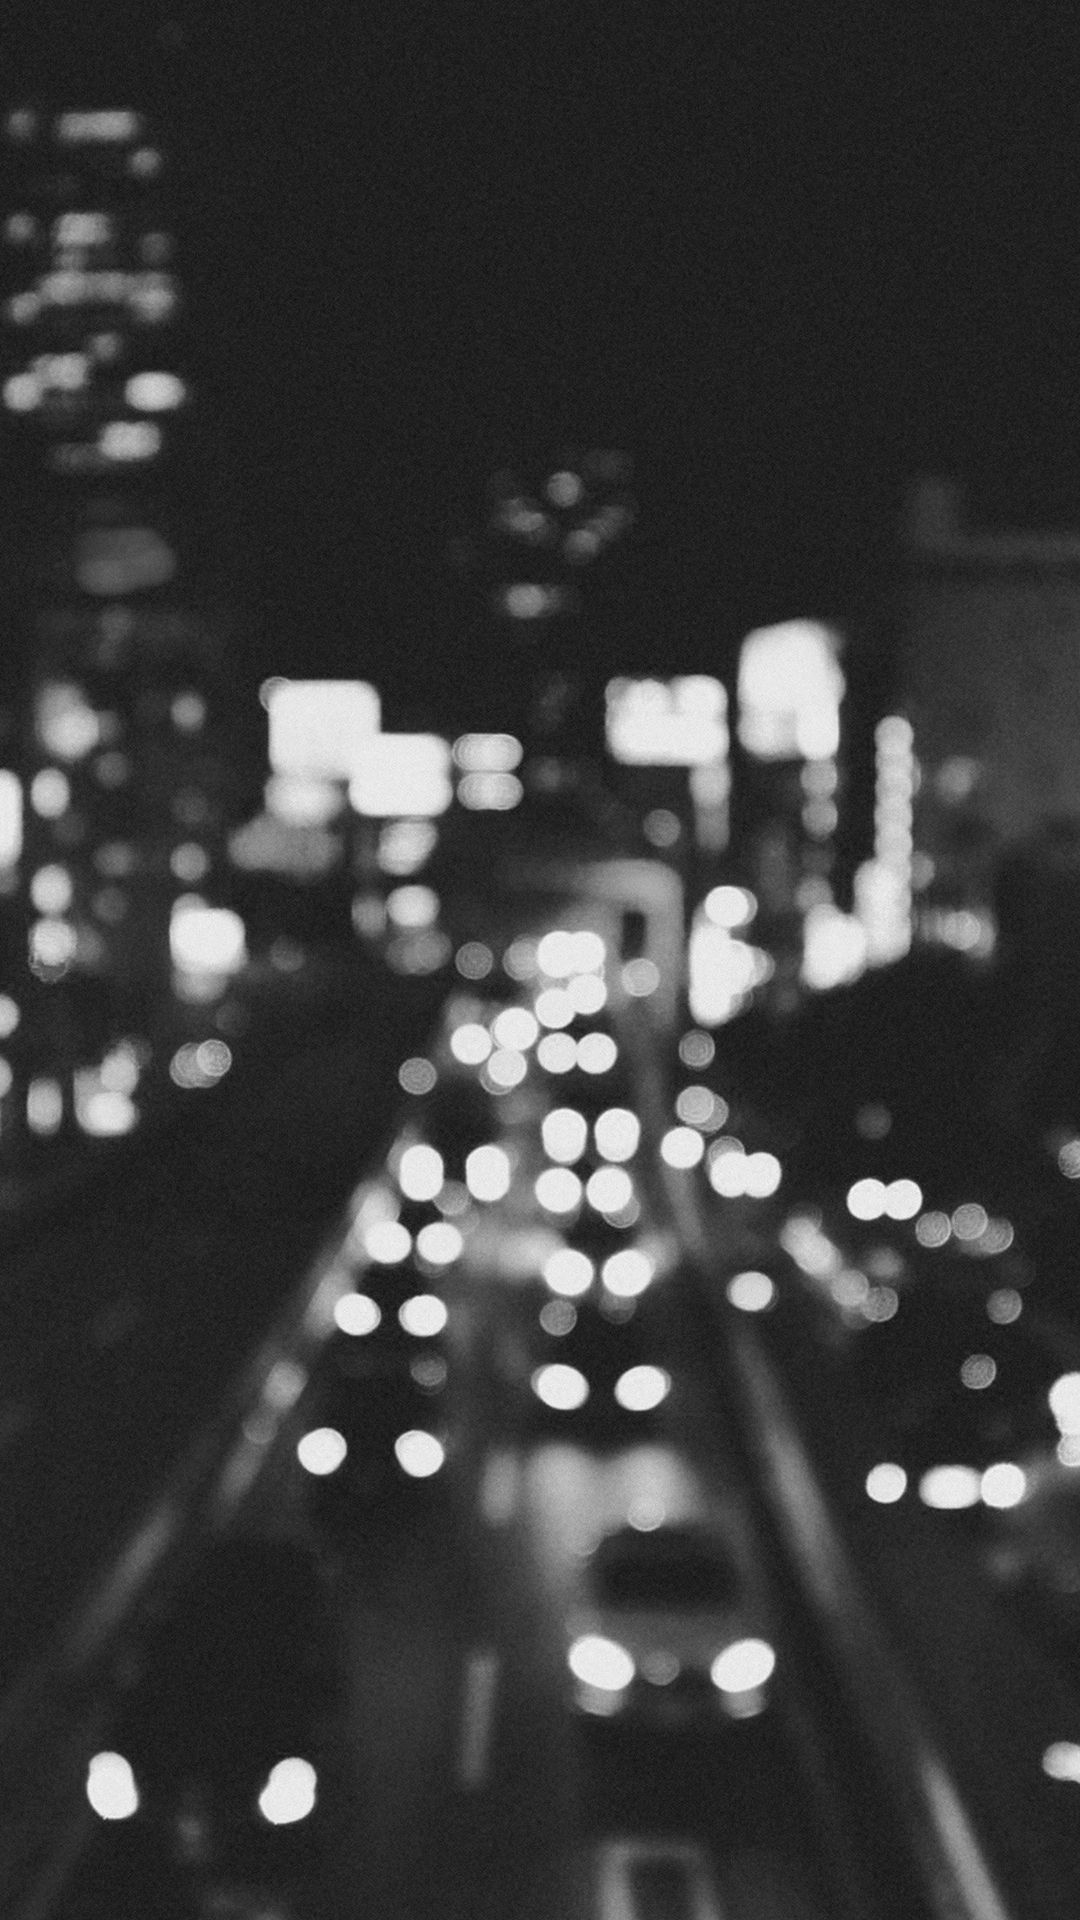 Wallpaper iphone 6 black - City Bokeh Night Street Nature Israel Iphone 6 Plus Wallpaper